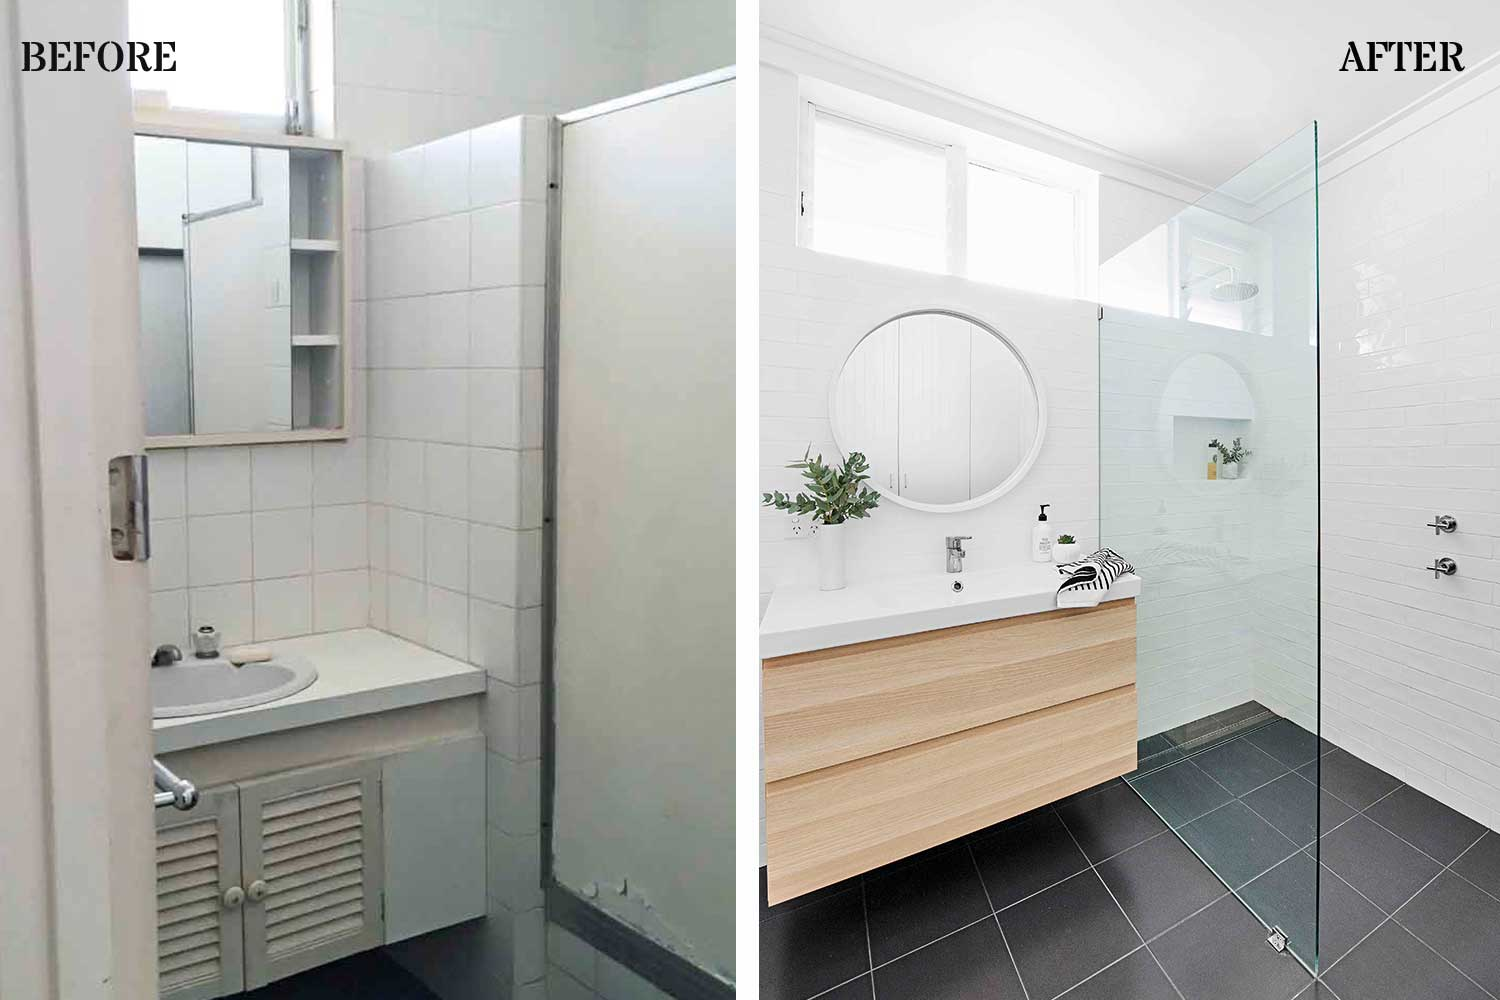 Before & After: Bathroom makeover renovated from disaster to